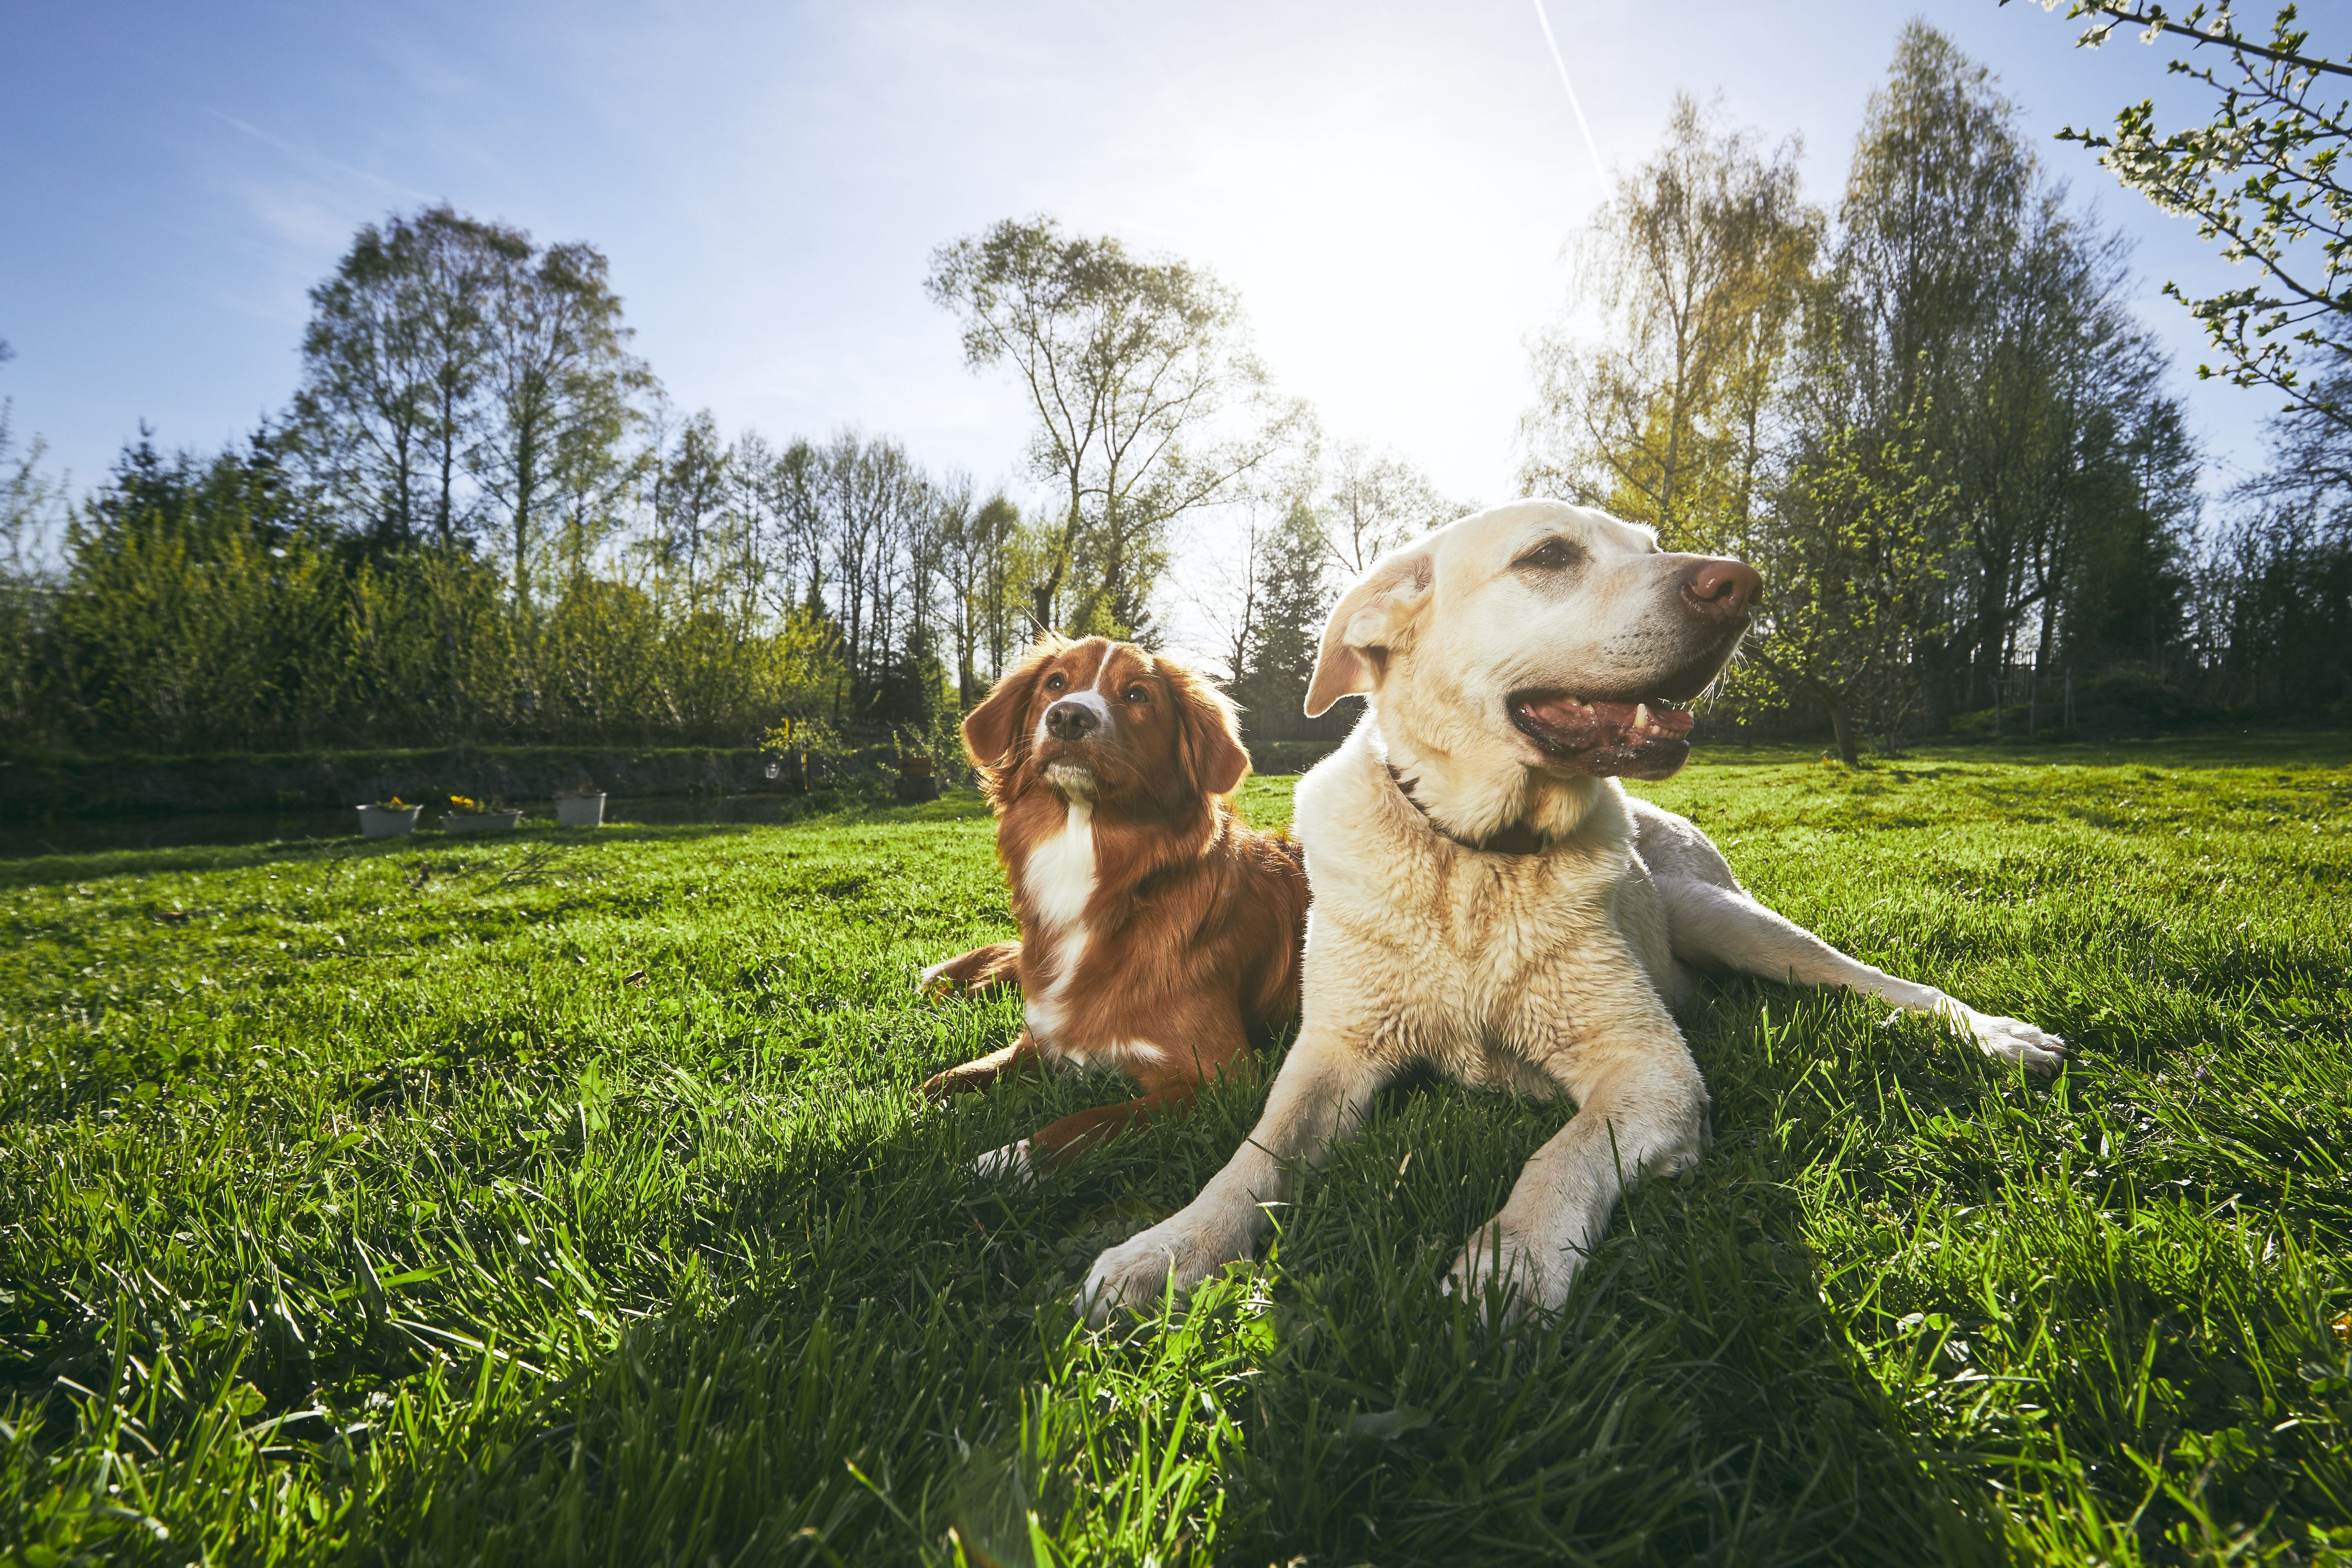 two friendly dogs in nature.jpg